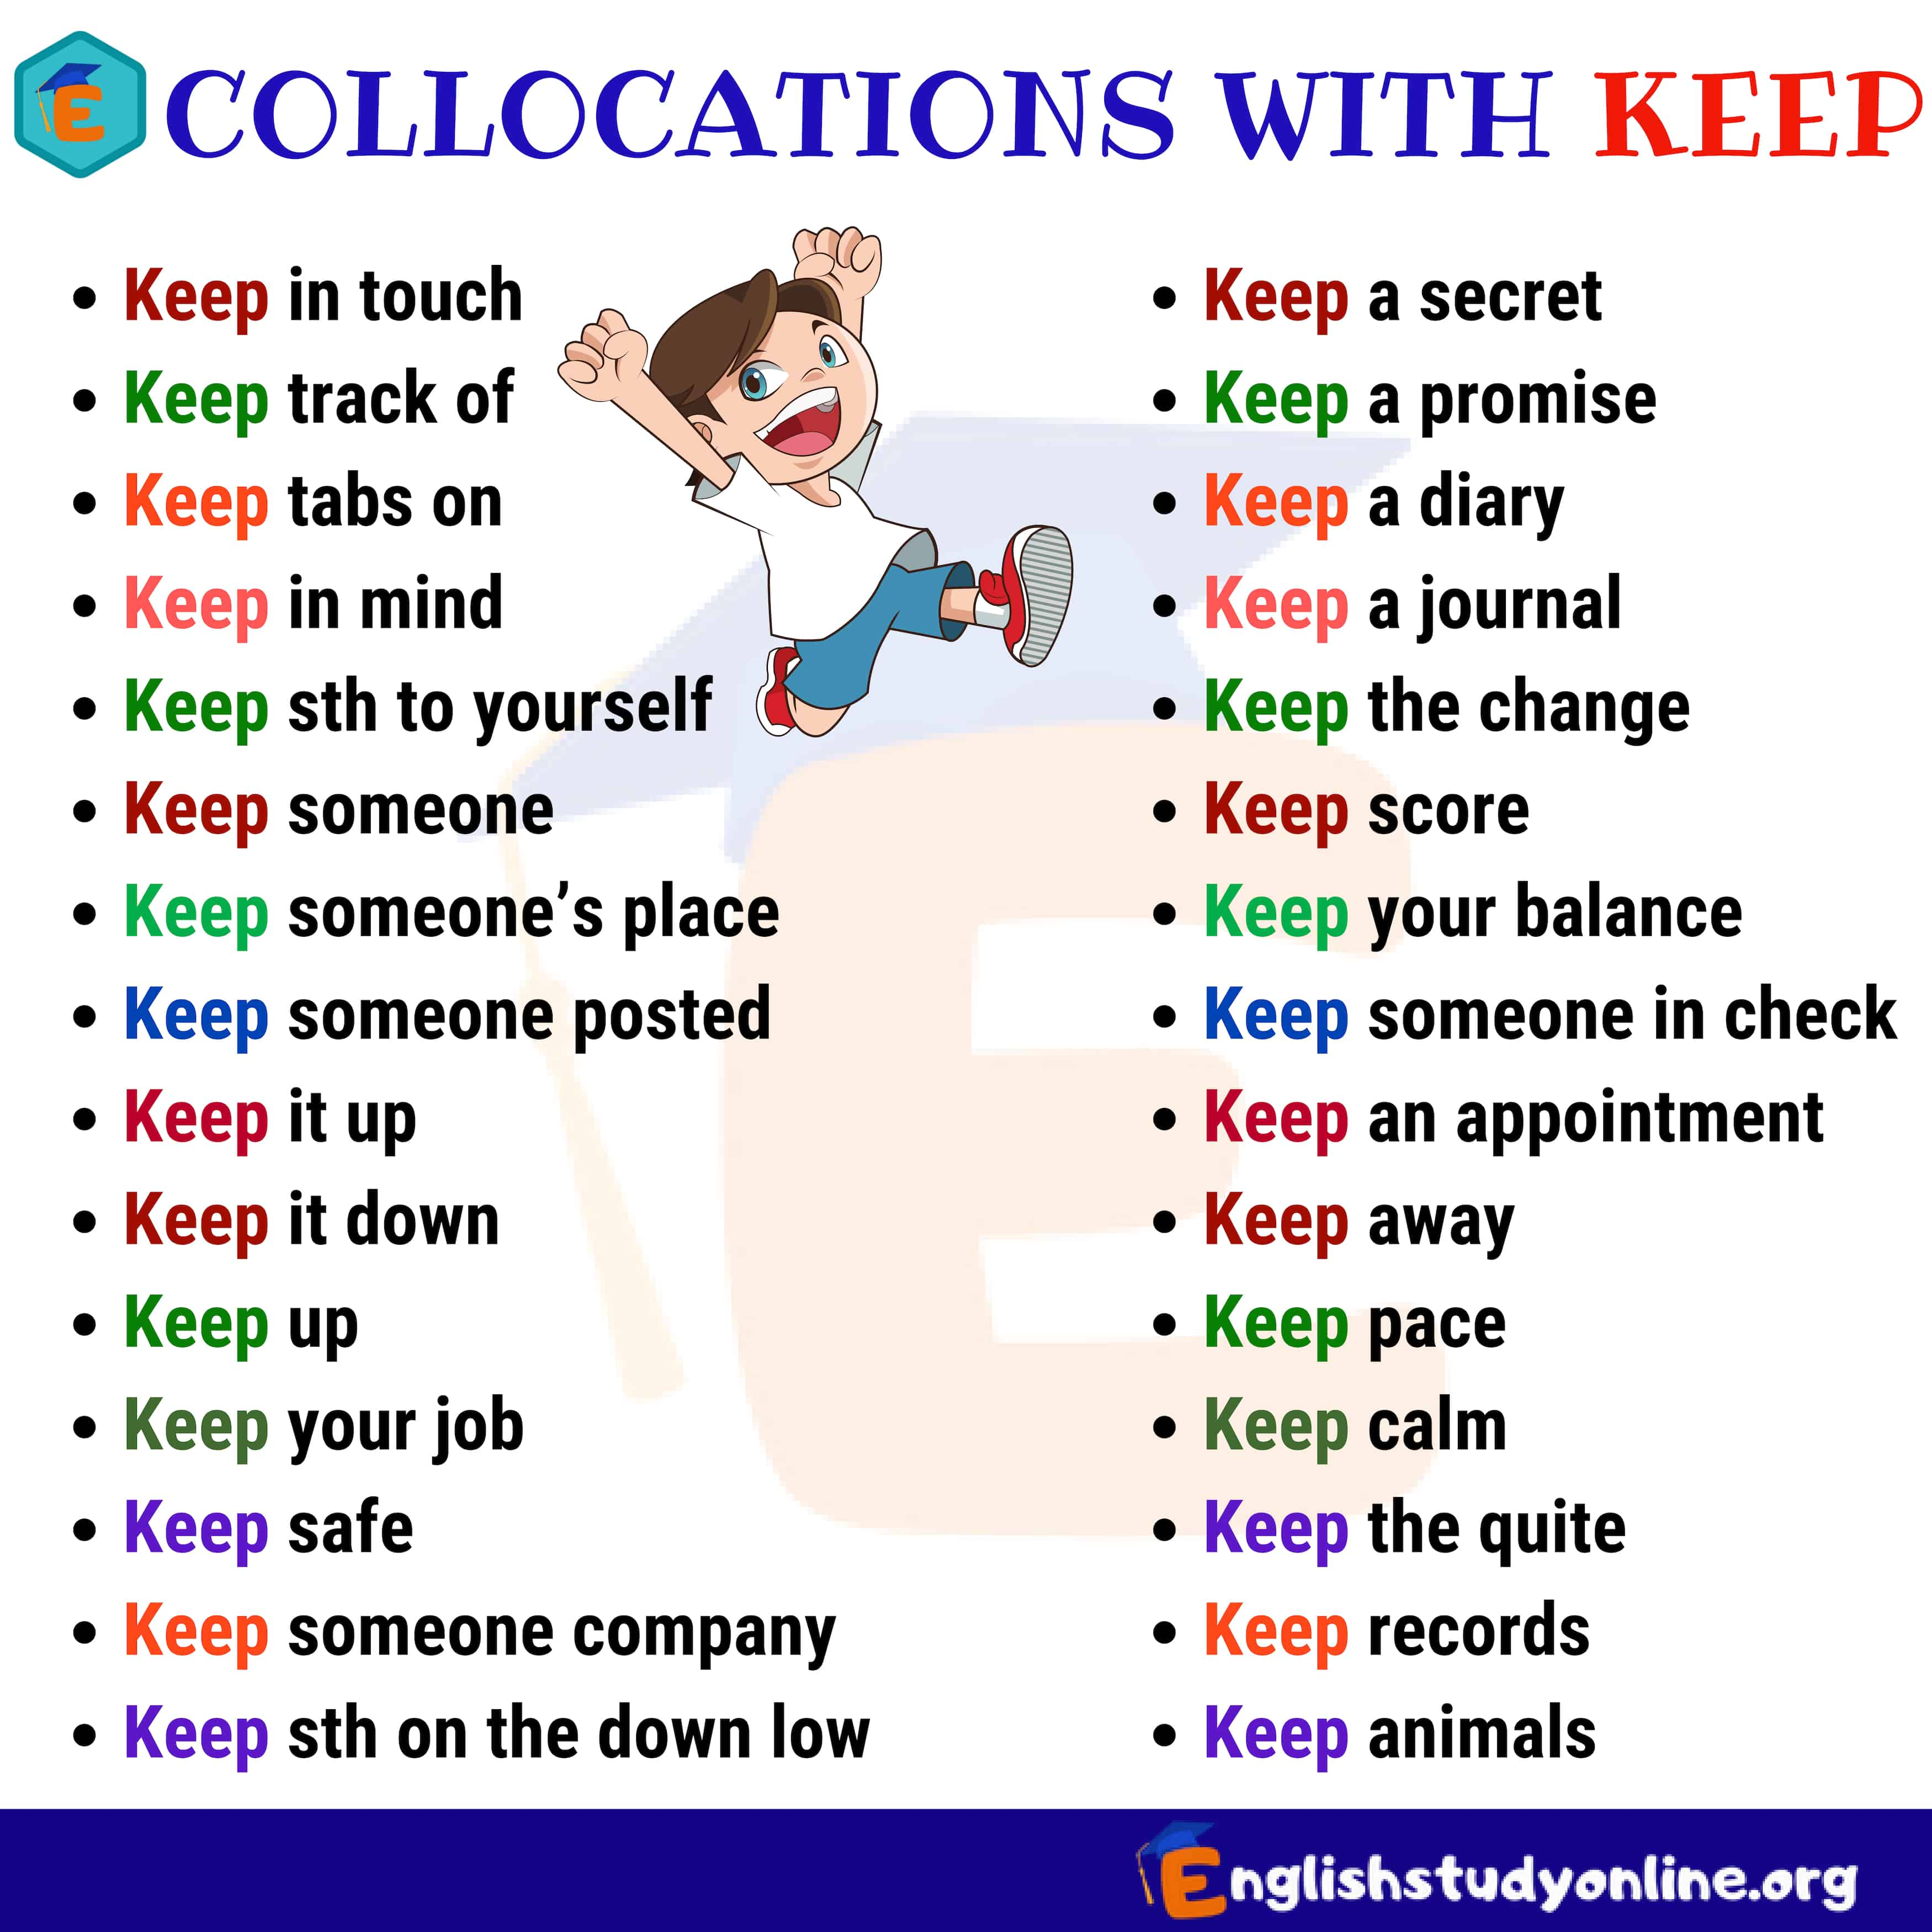 250+ Frequently Used Collocations List in English 4